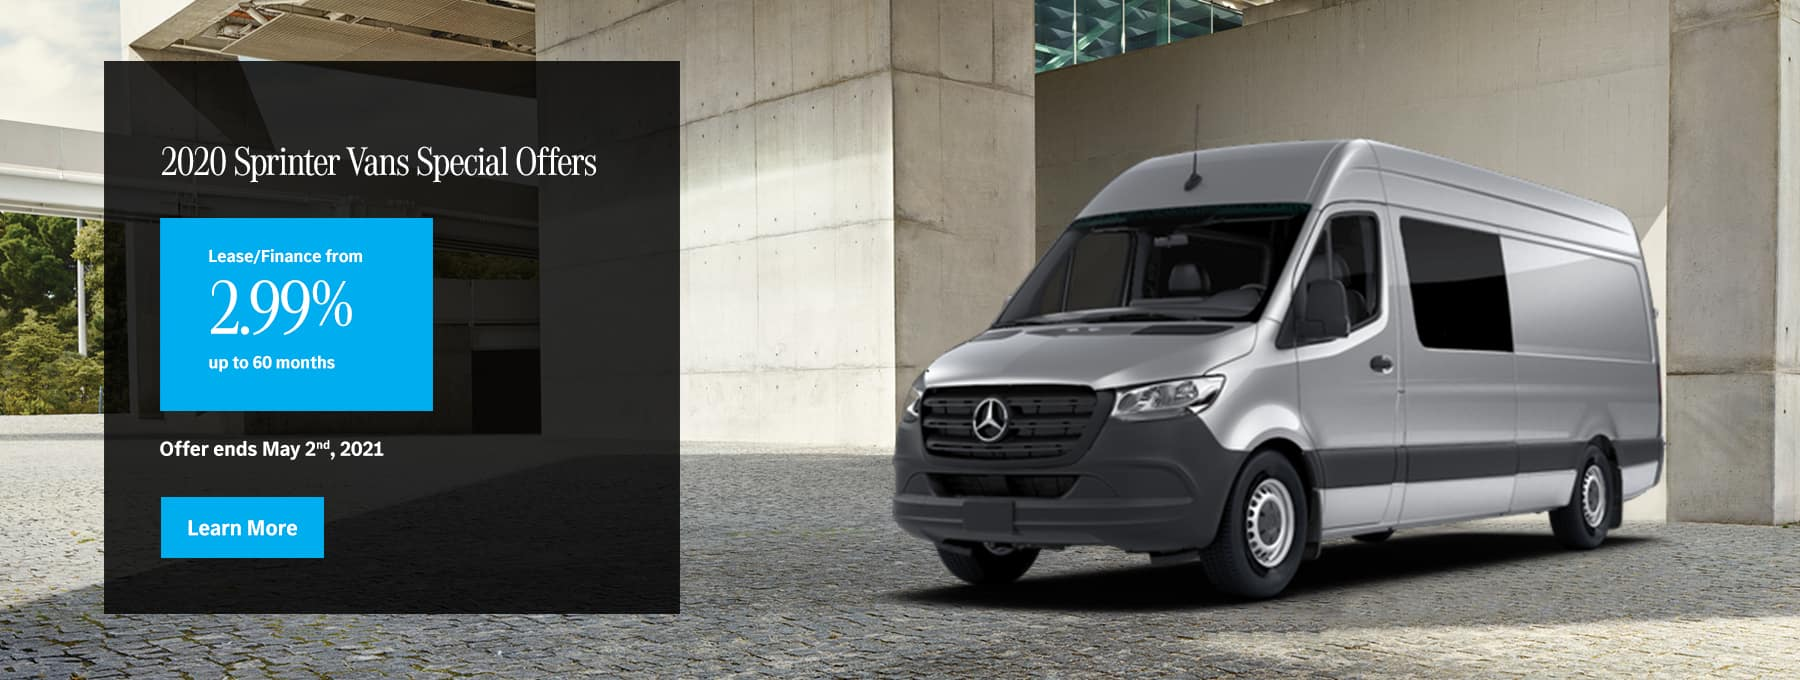 04-2021_SLIDER-DP_Vans-Sprinter